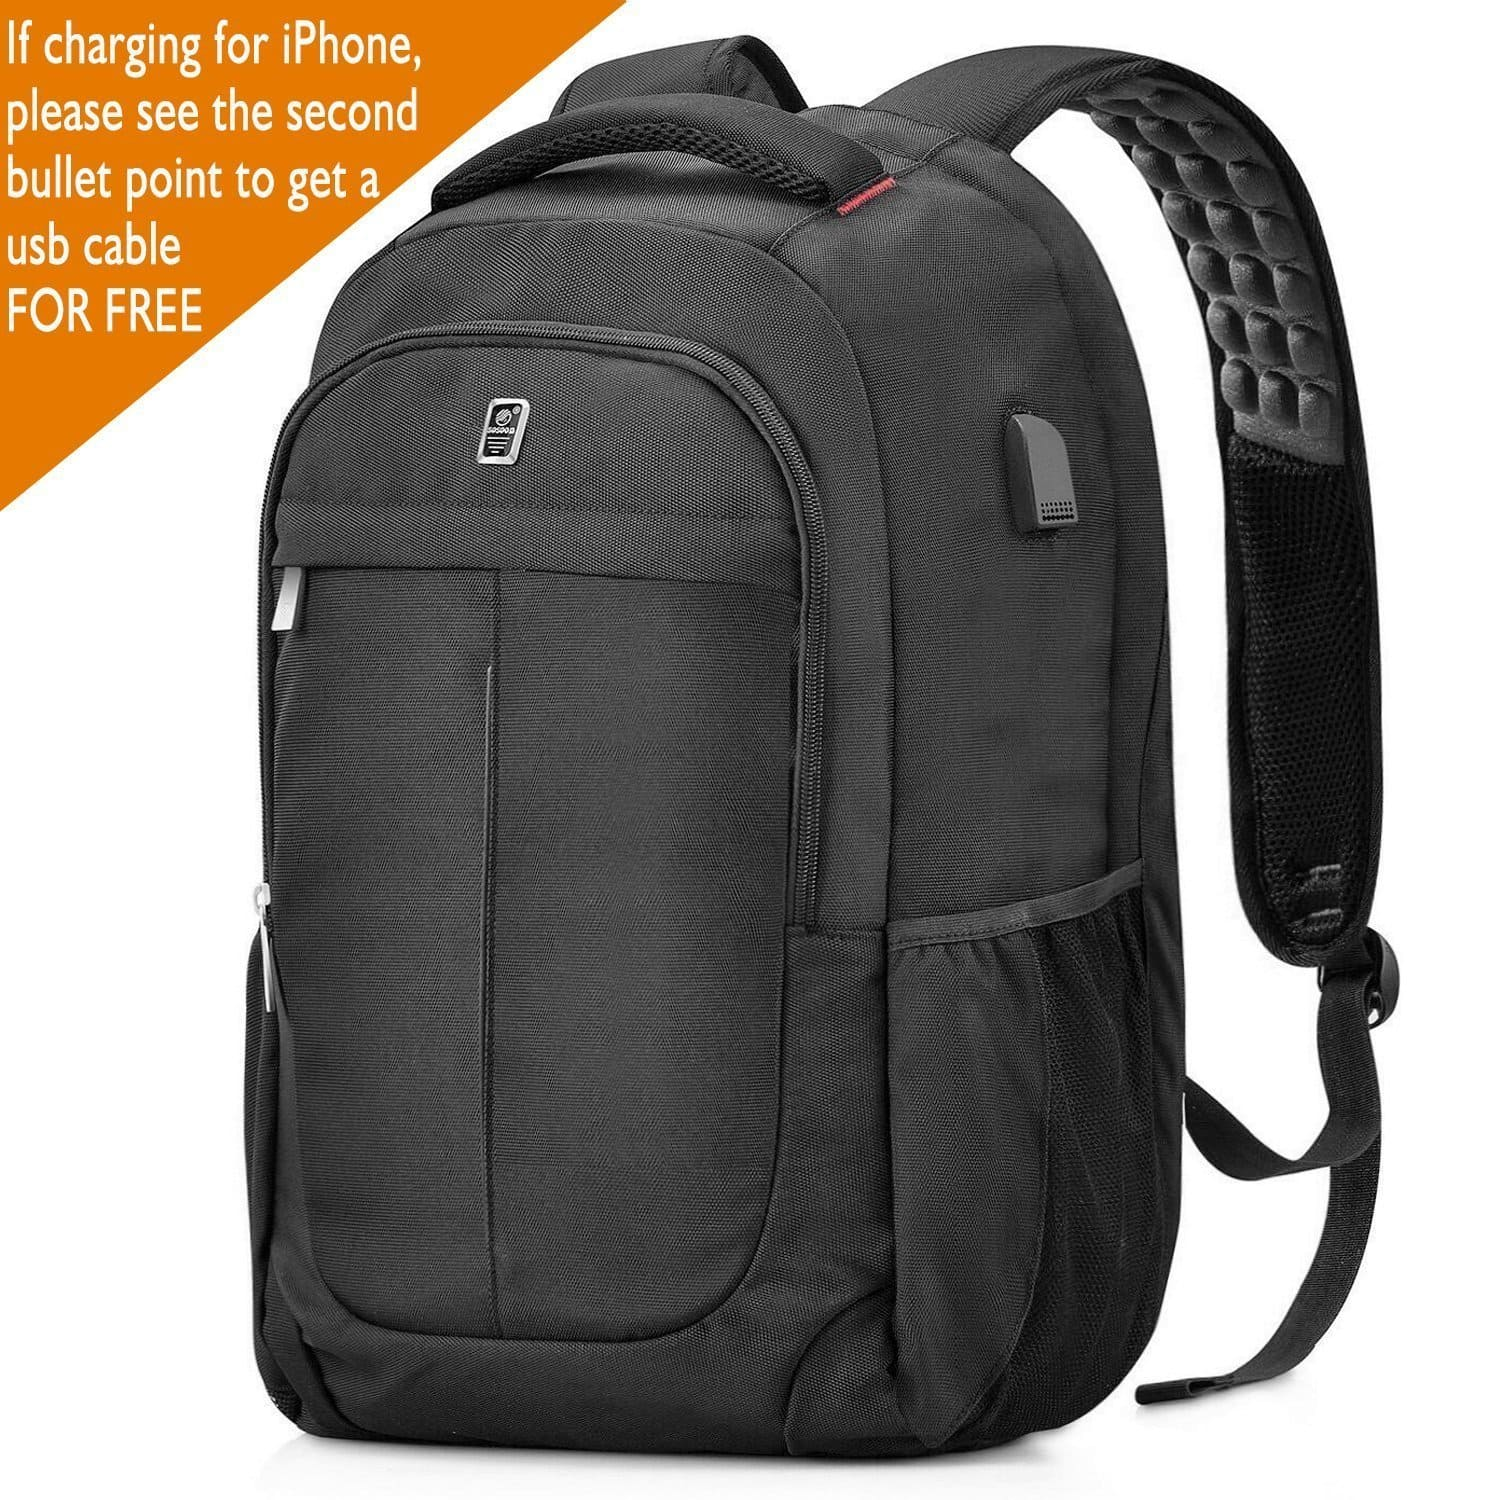 "Sosoon Black 15.6"" Laptop Backpack with USB Charging Port"